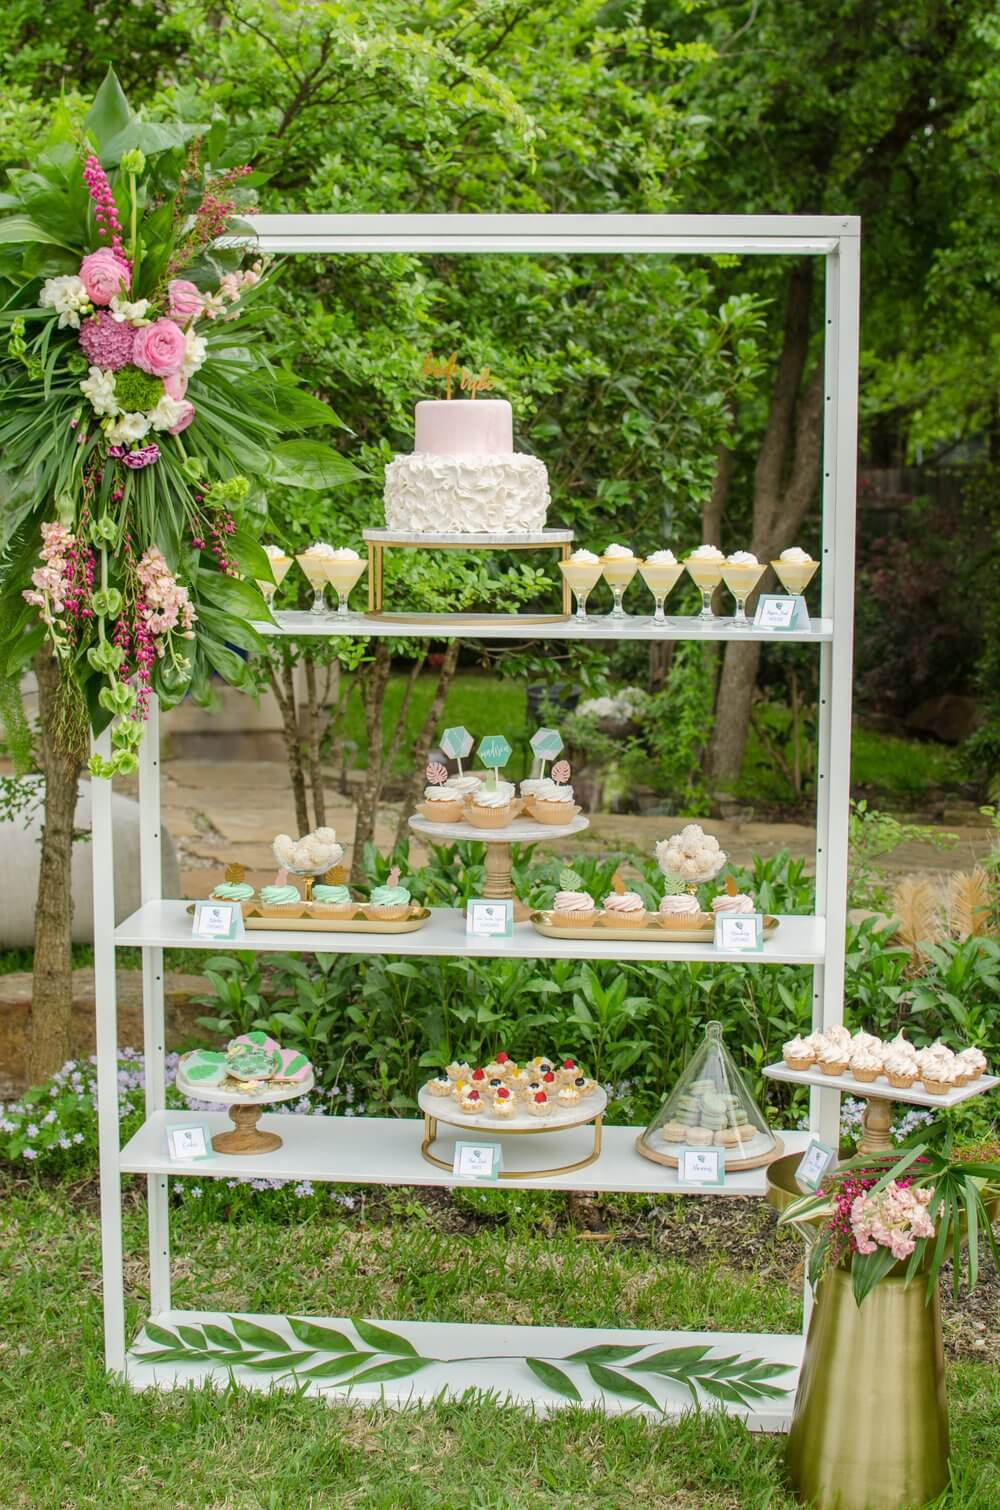 Outdoor-dessert-table-idea.jpg